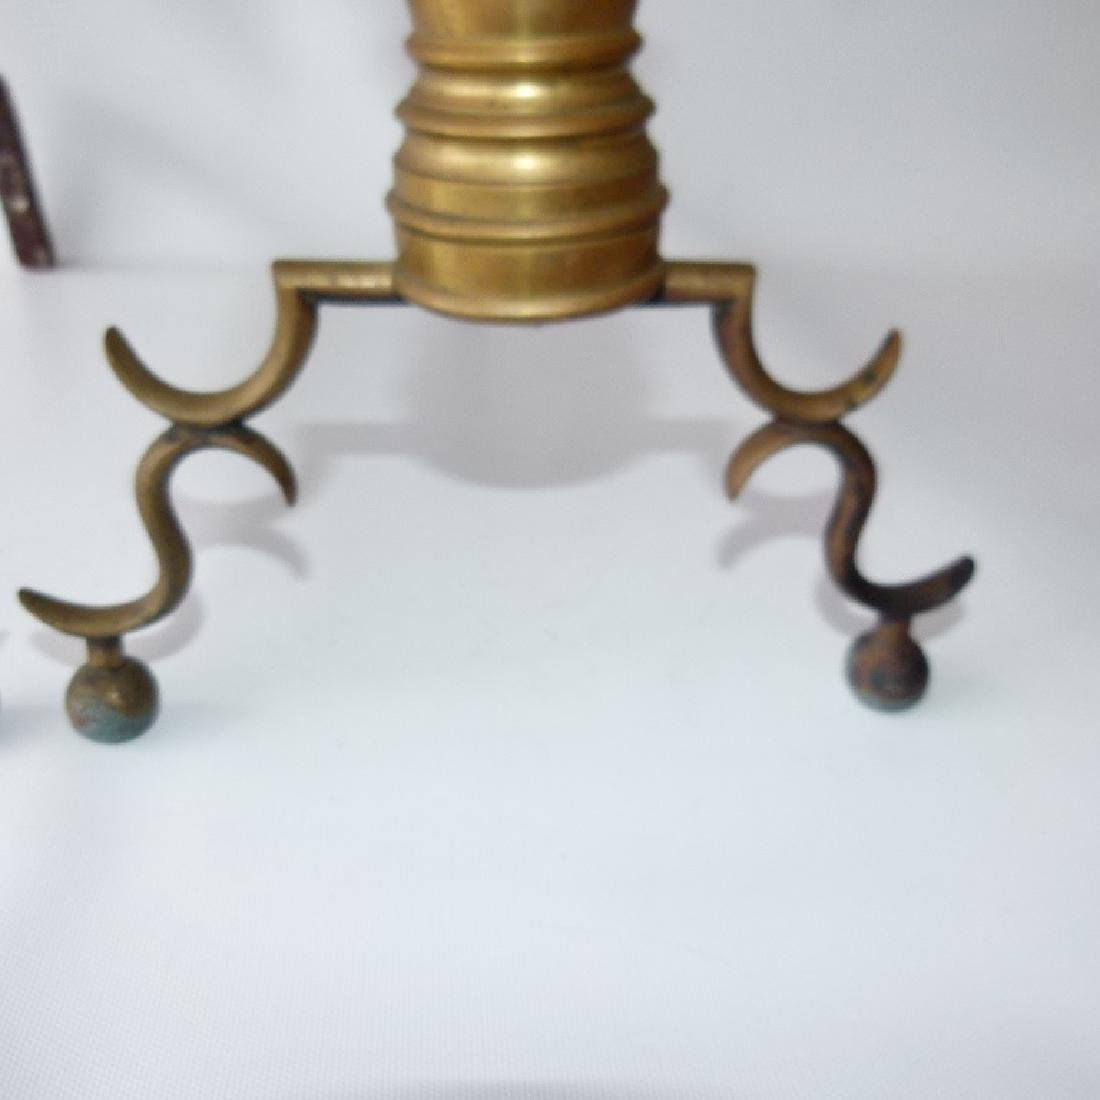 PAIR FEDERAL BRASS ANDIRONS, 19TH C. - 5